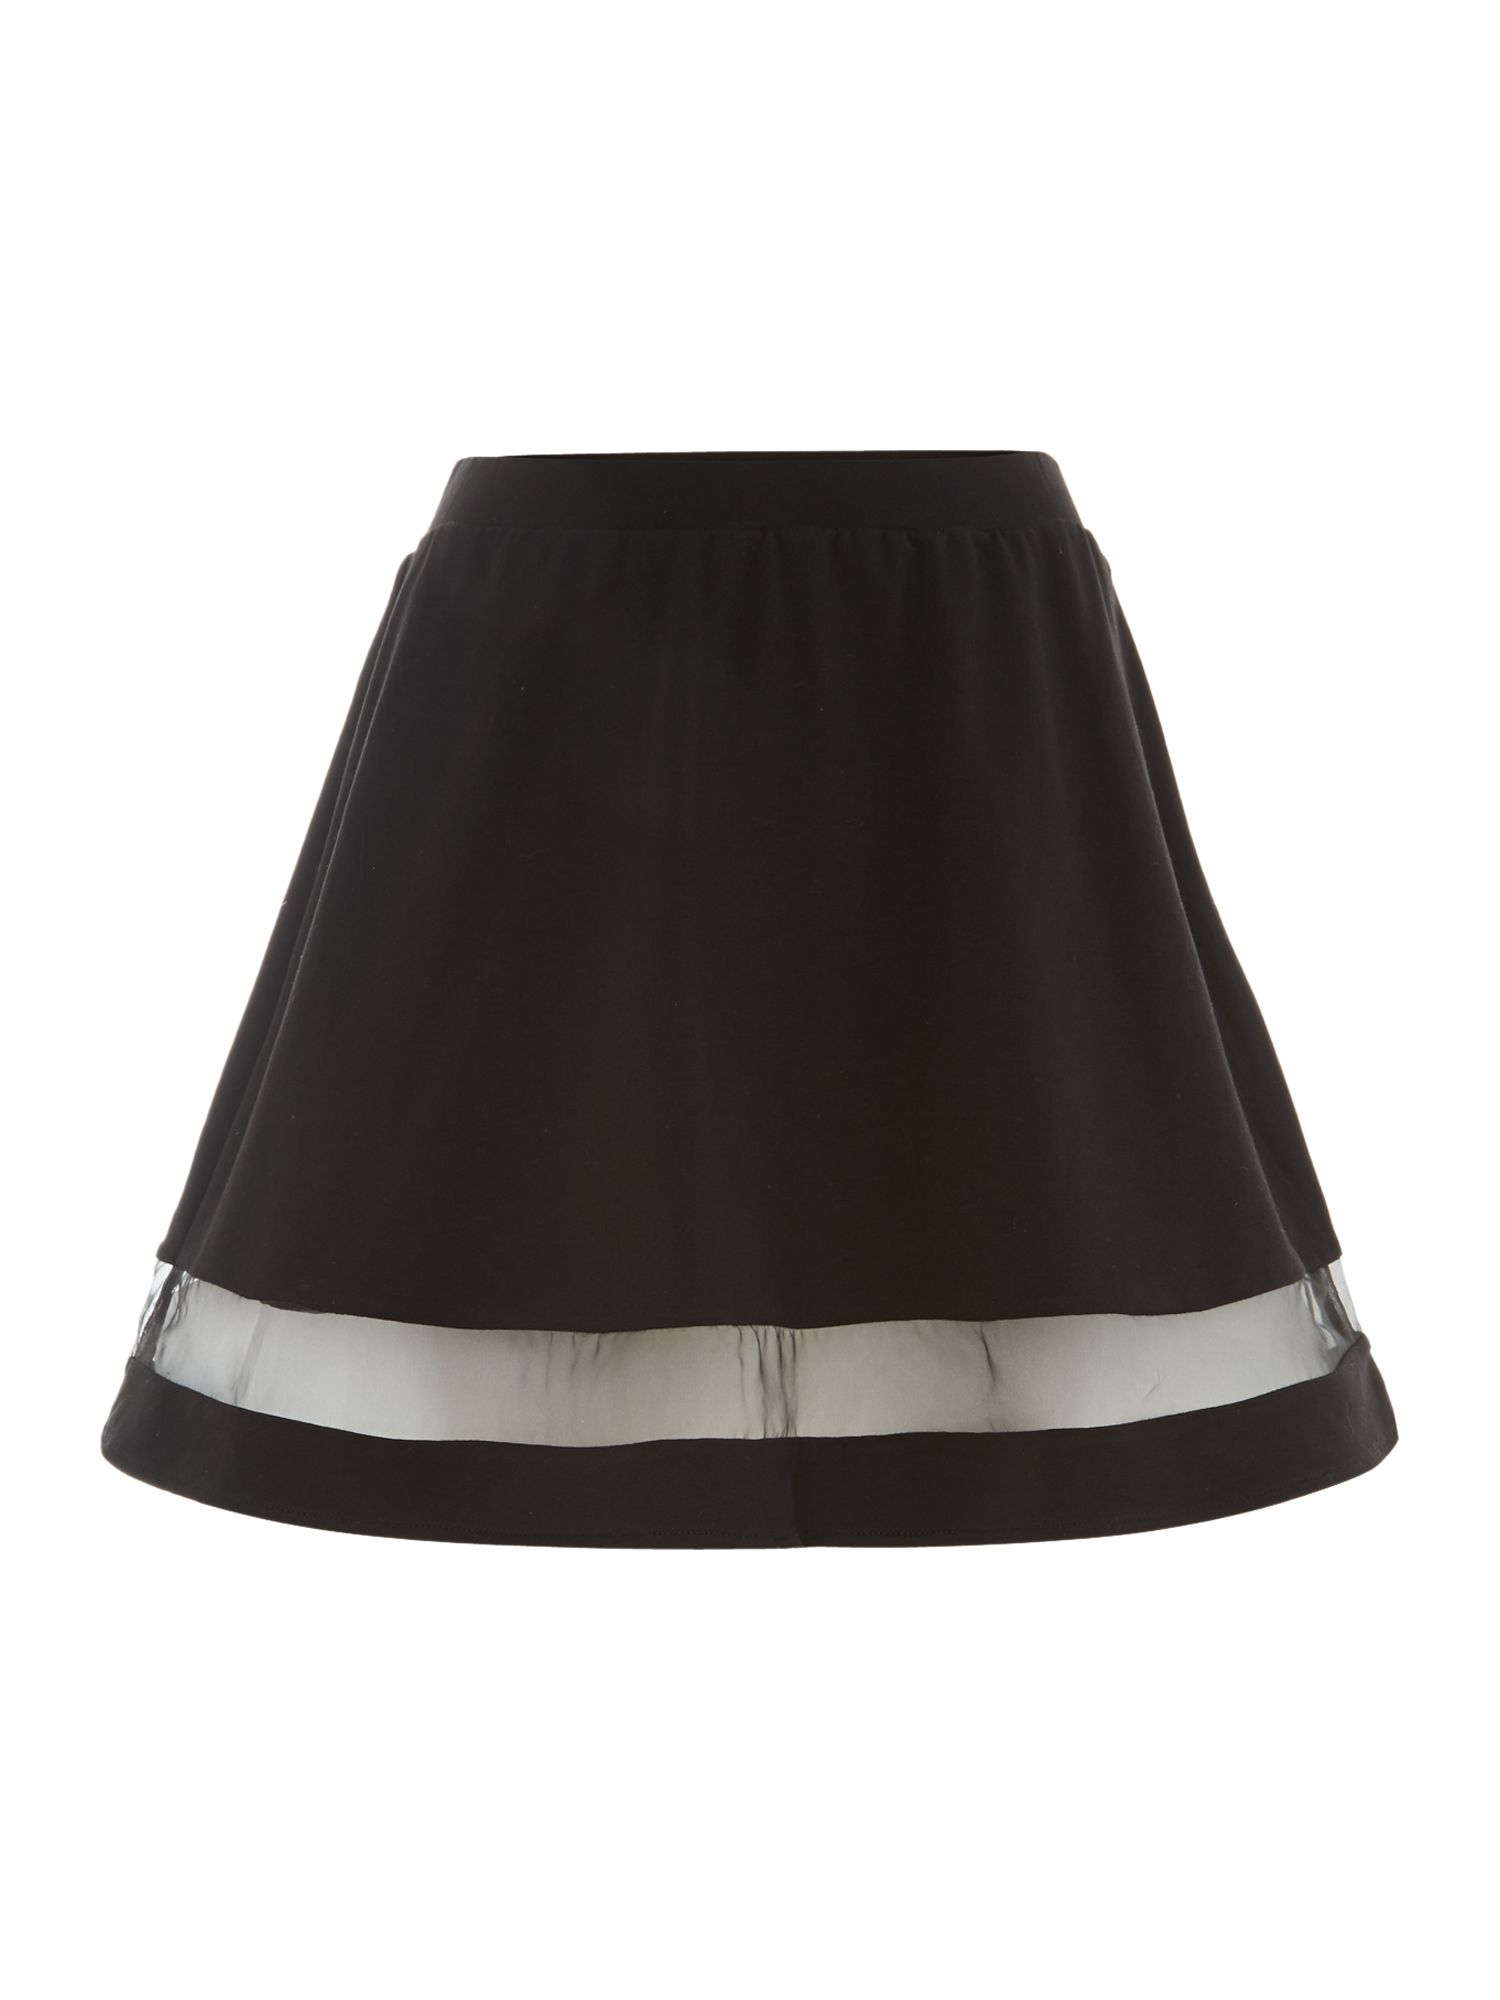 Sheer skirt panelled skirt